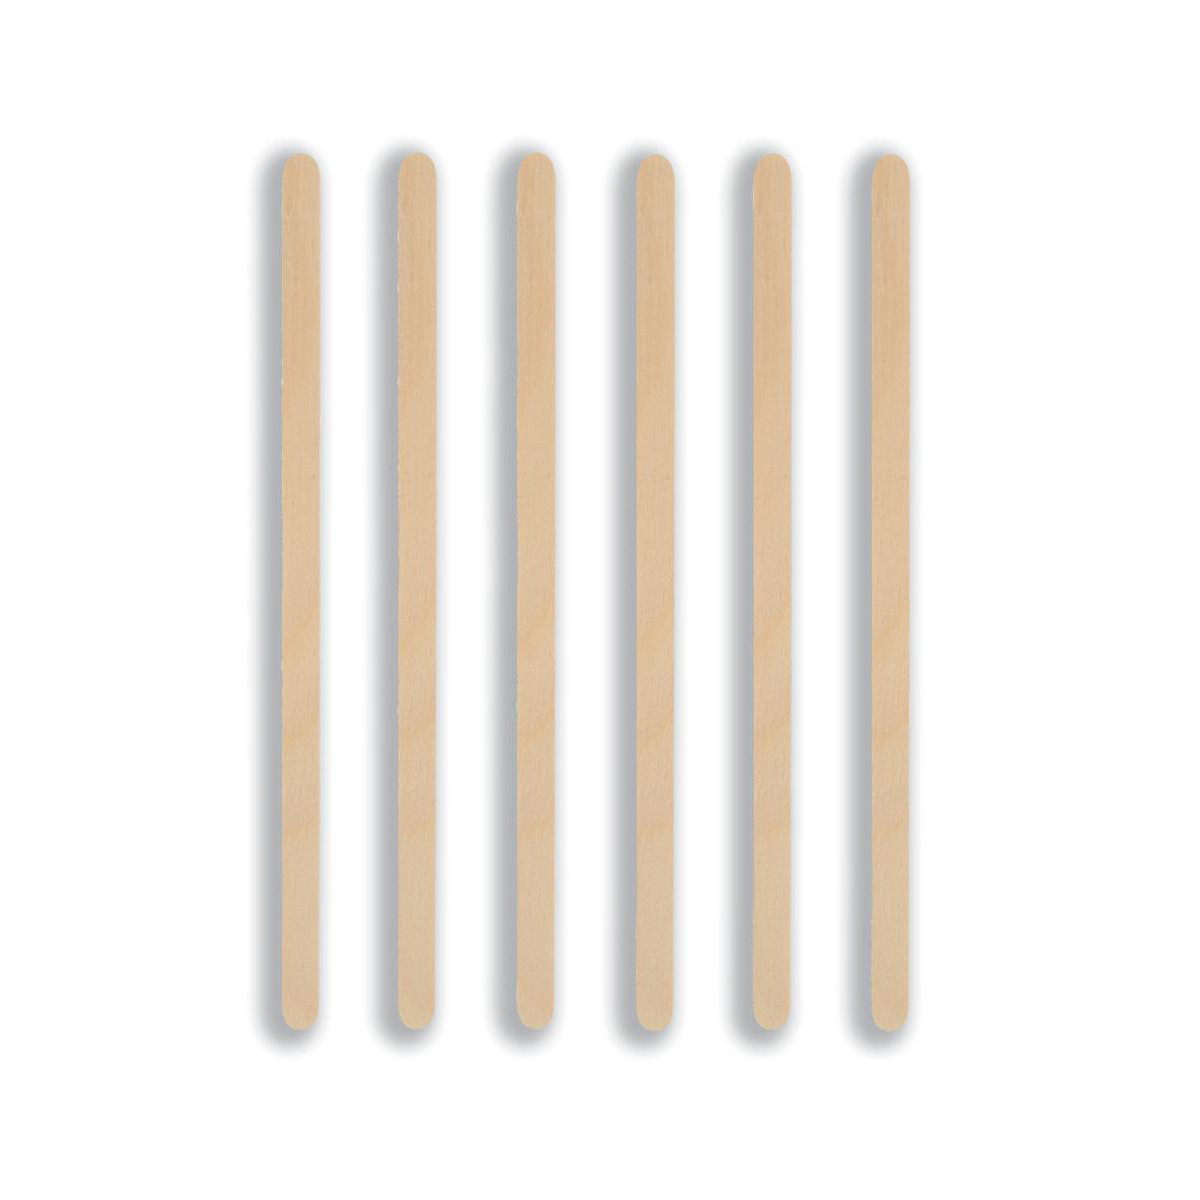 Washing Up Bowls / Brushes / Drainers Drink Stirrers Wooden 190mm Pack 1000